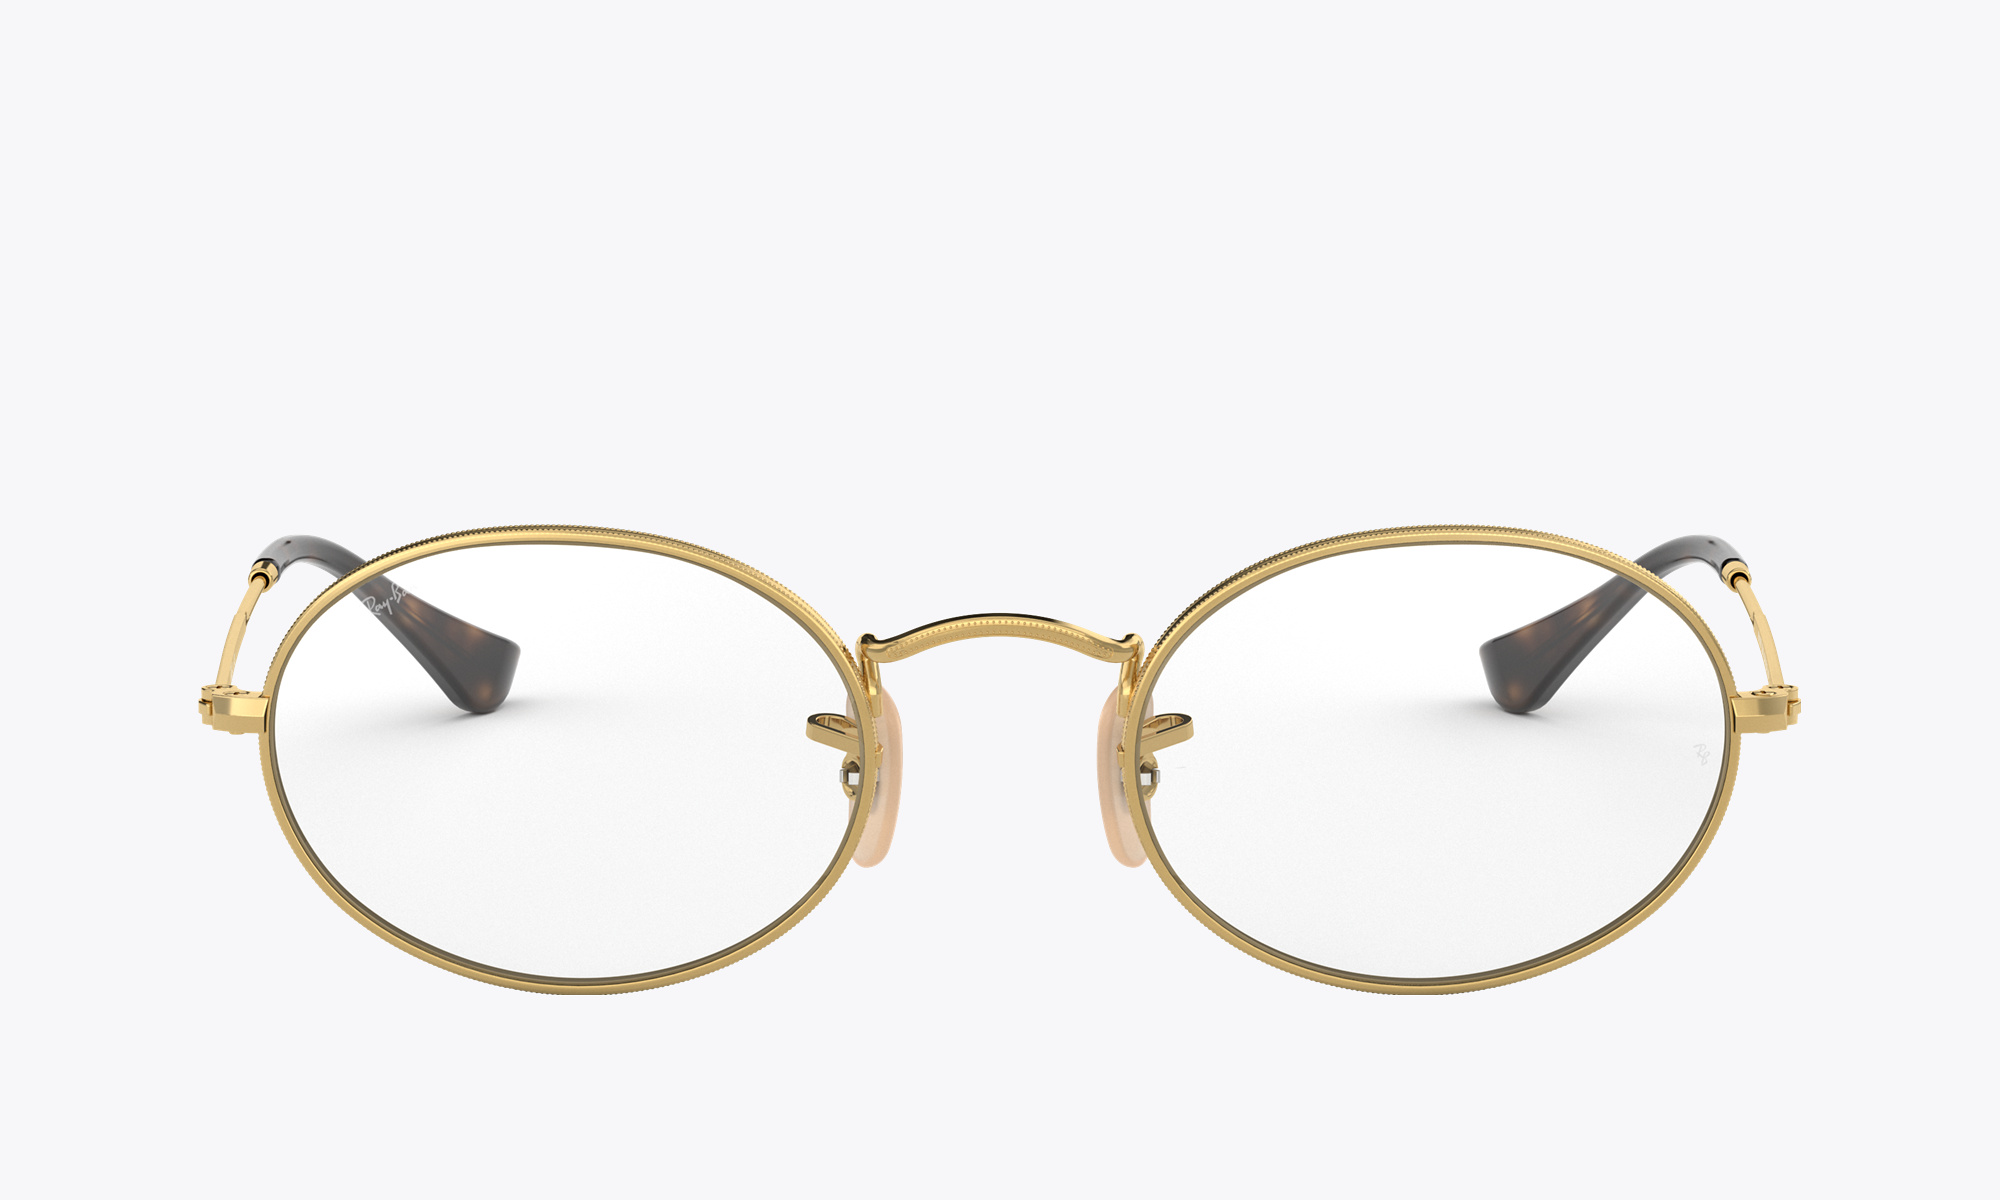 Image of Ray-Ban OVAL OPTICS color Gold